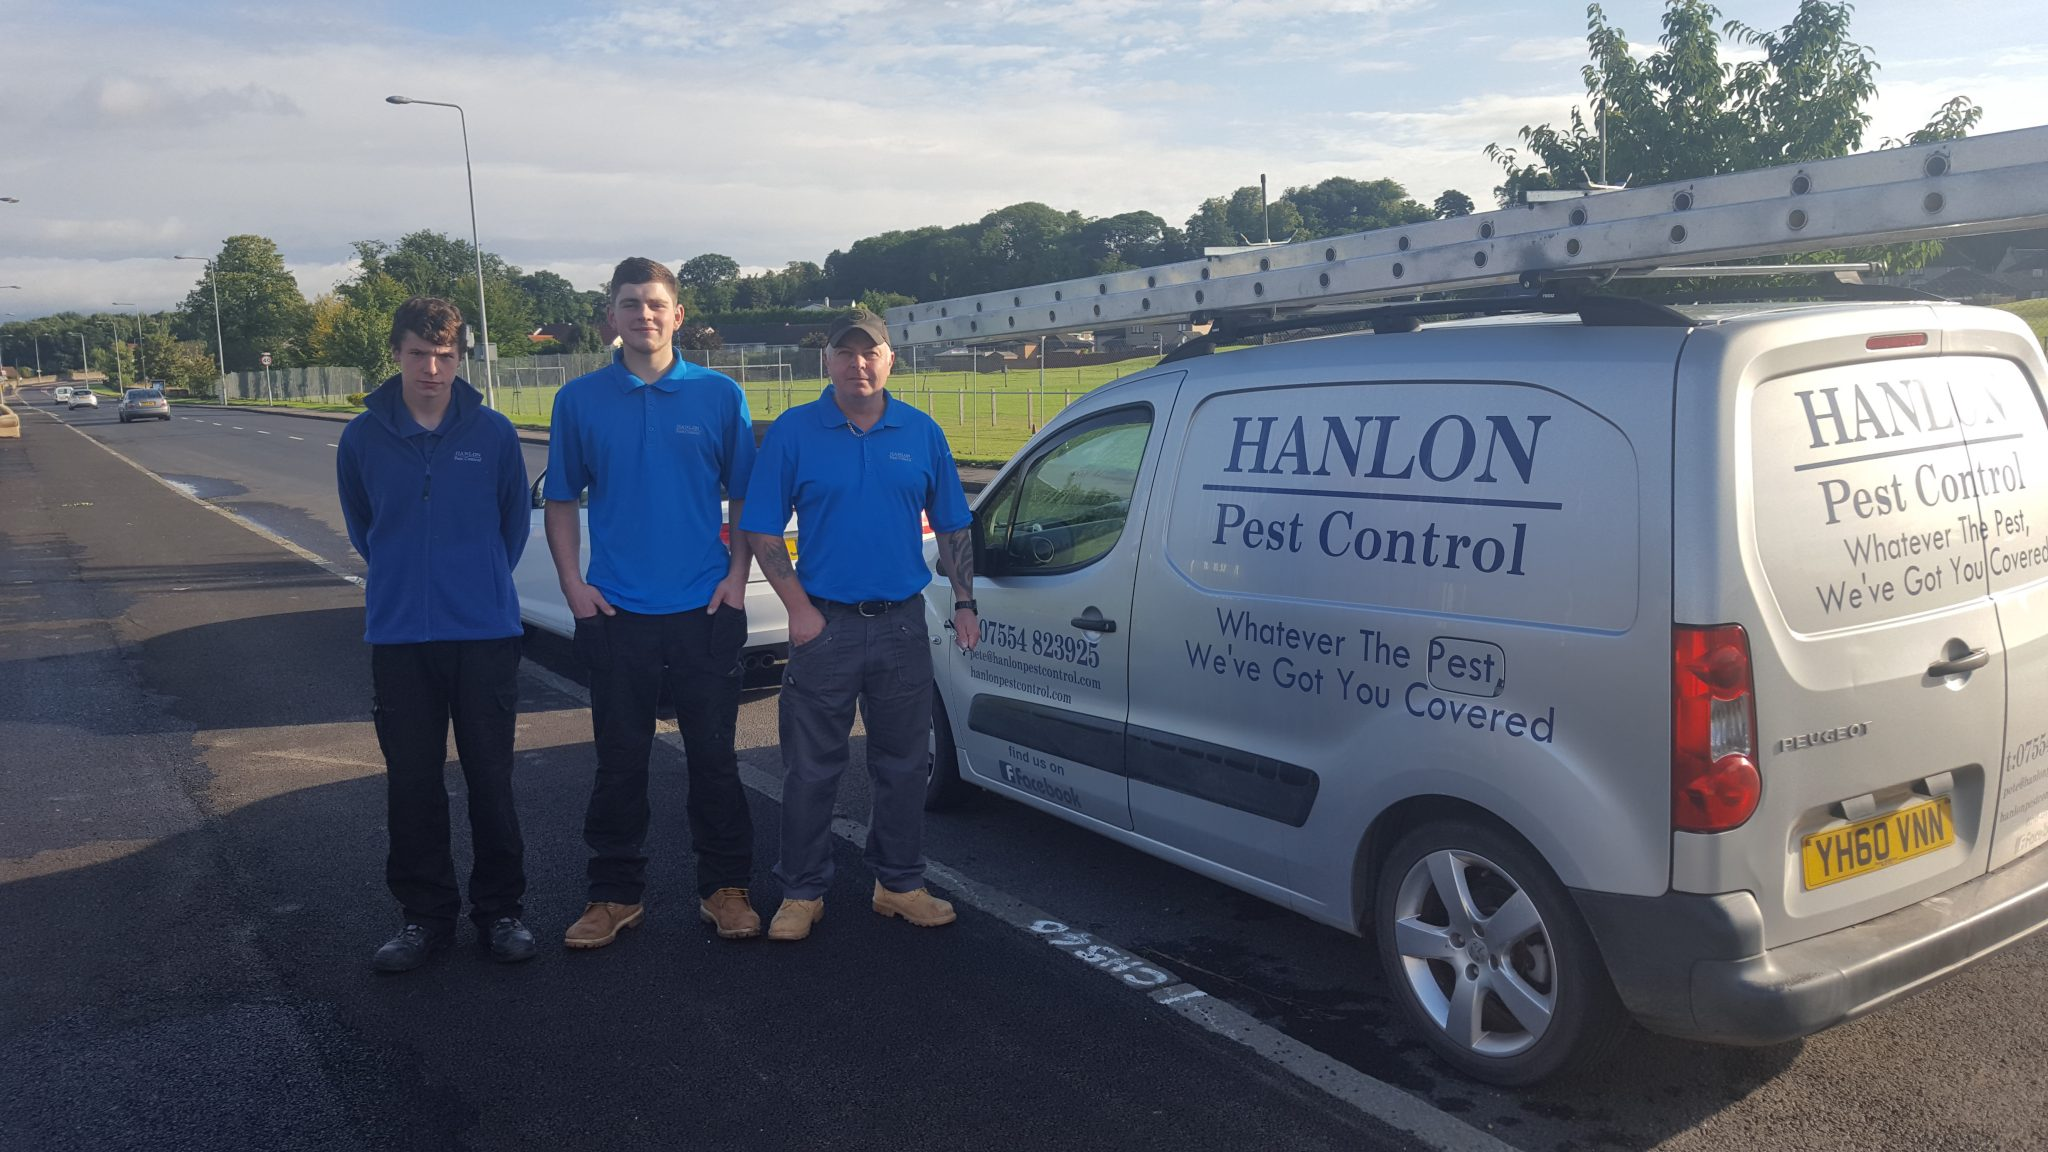 Hanlon Pest Control Team